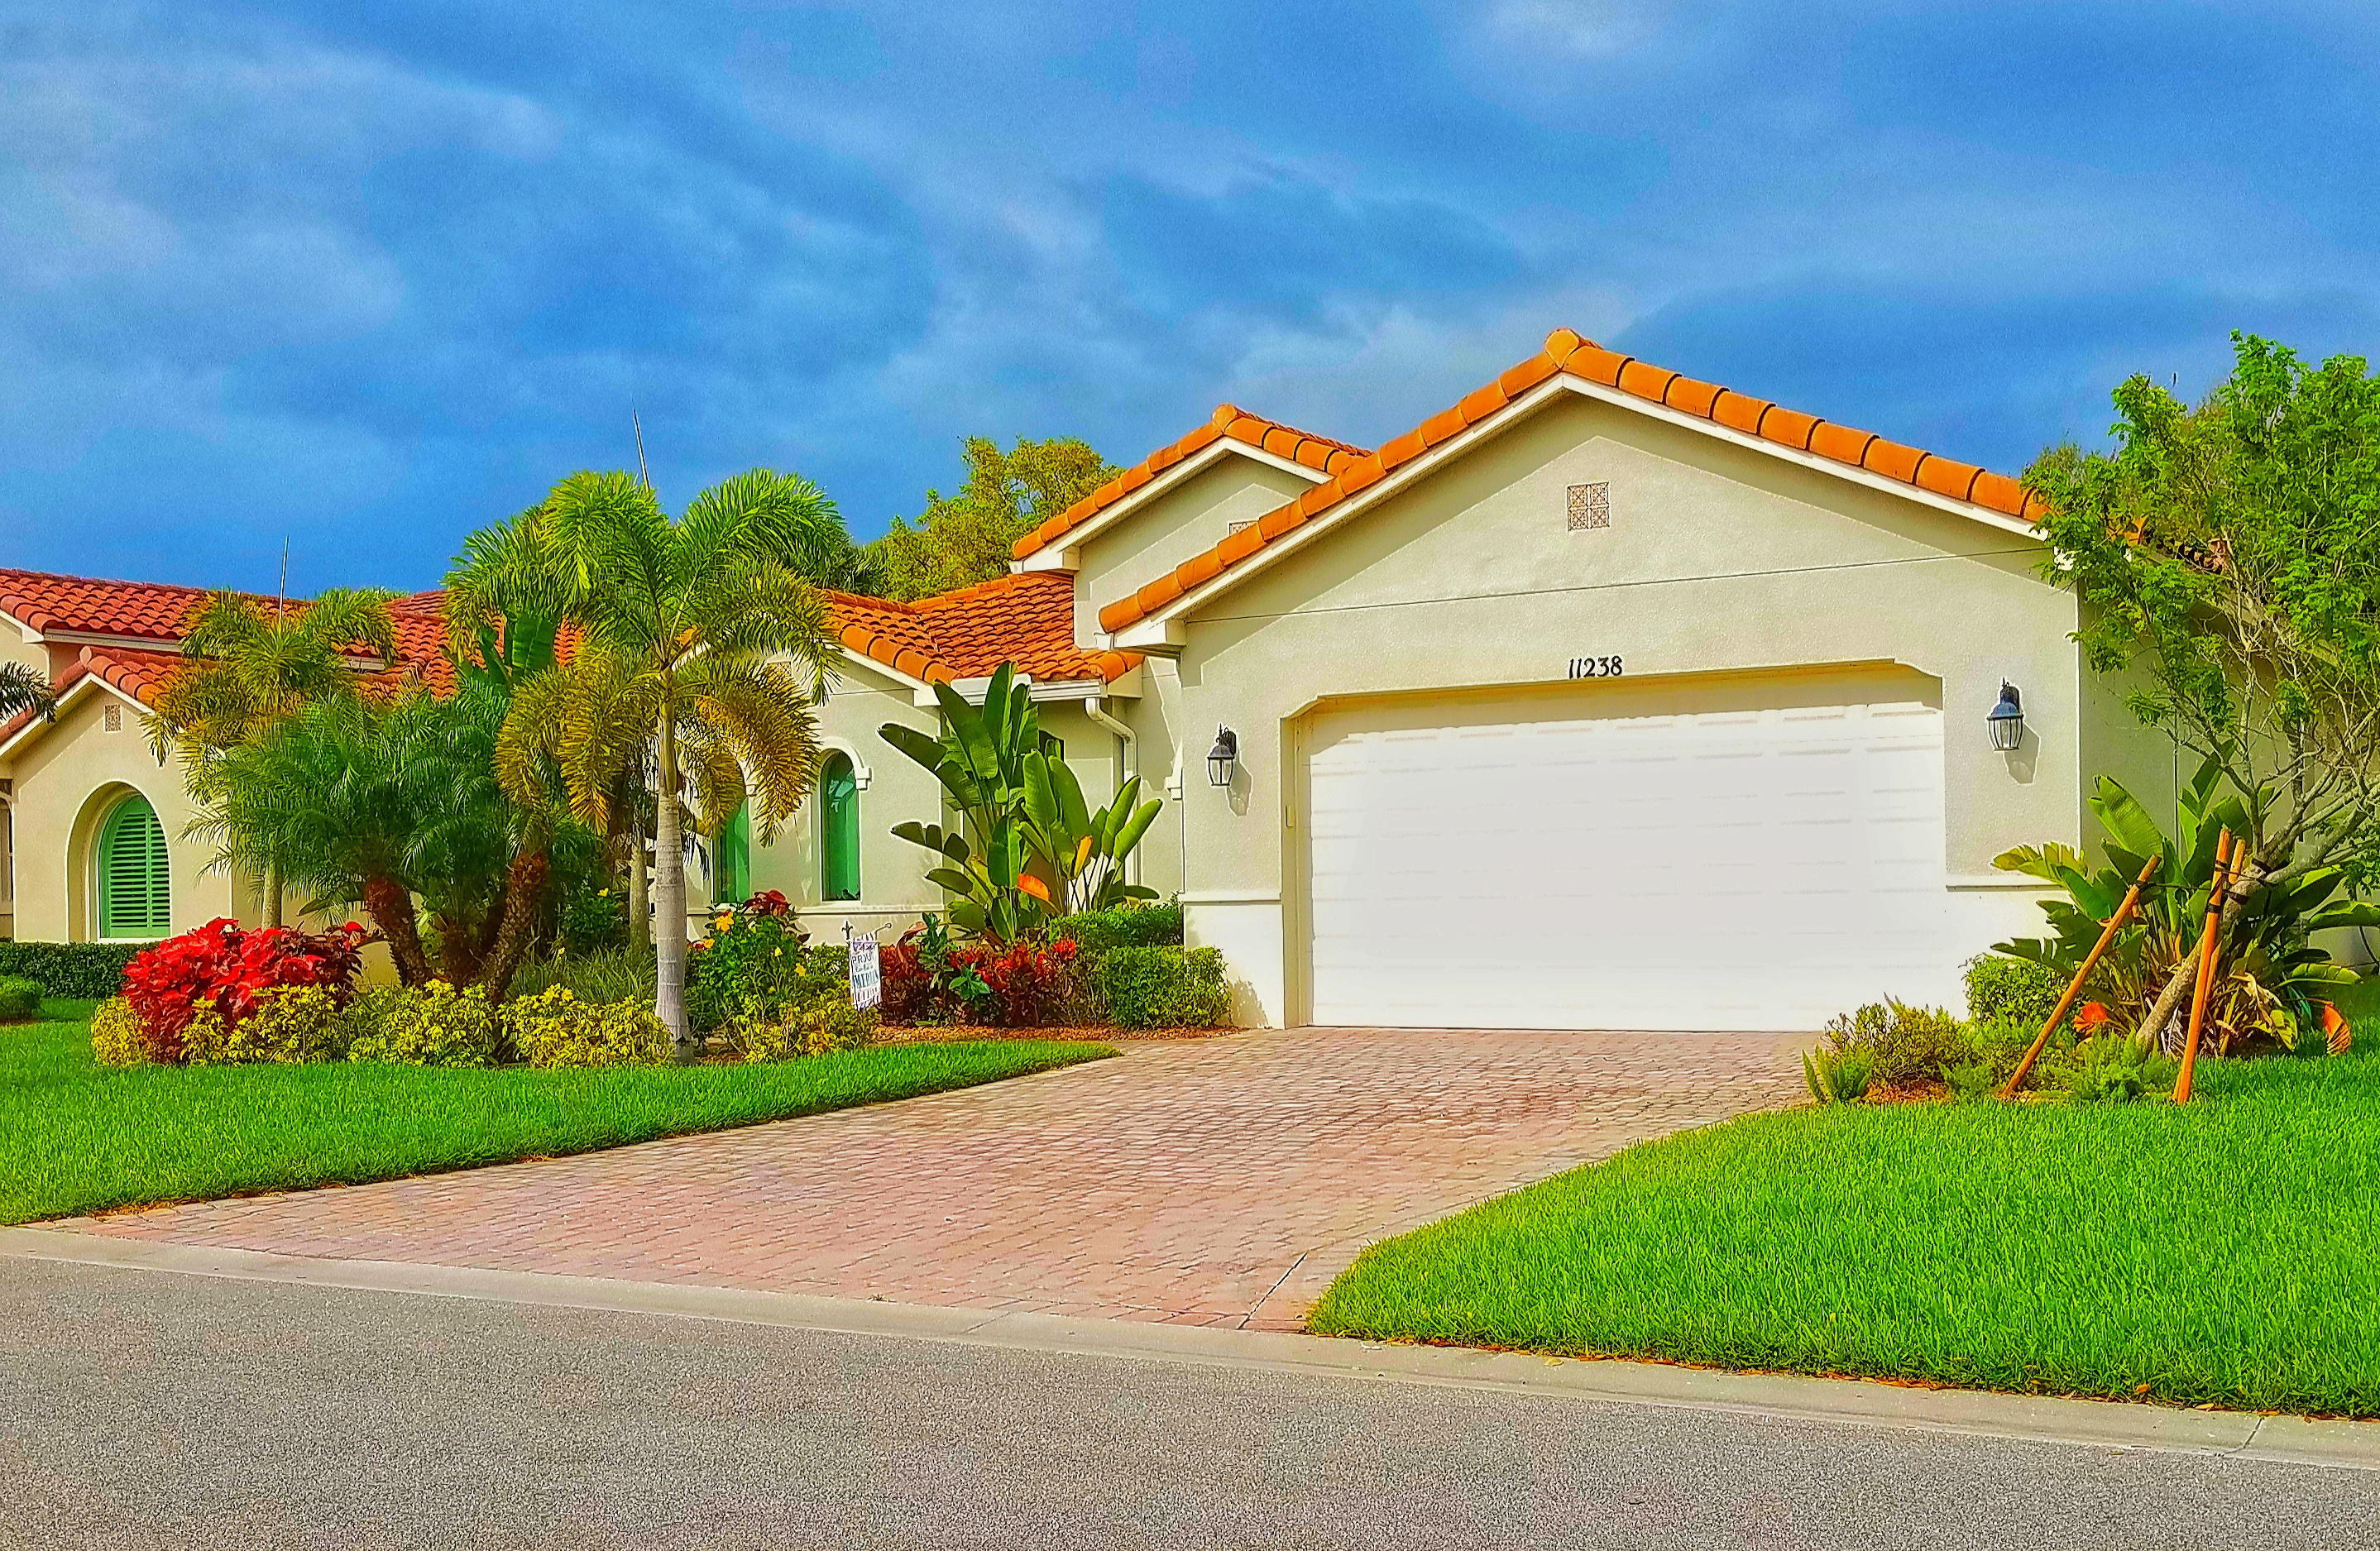 11238 SW Apple Blossom Trail - Port St Lucie, Florida